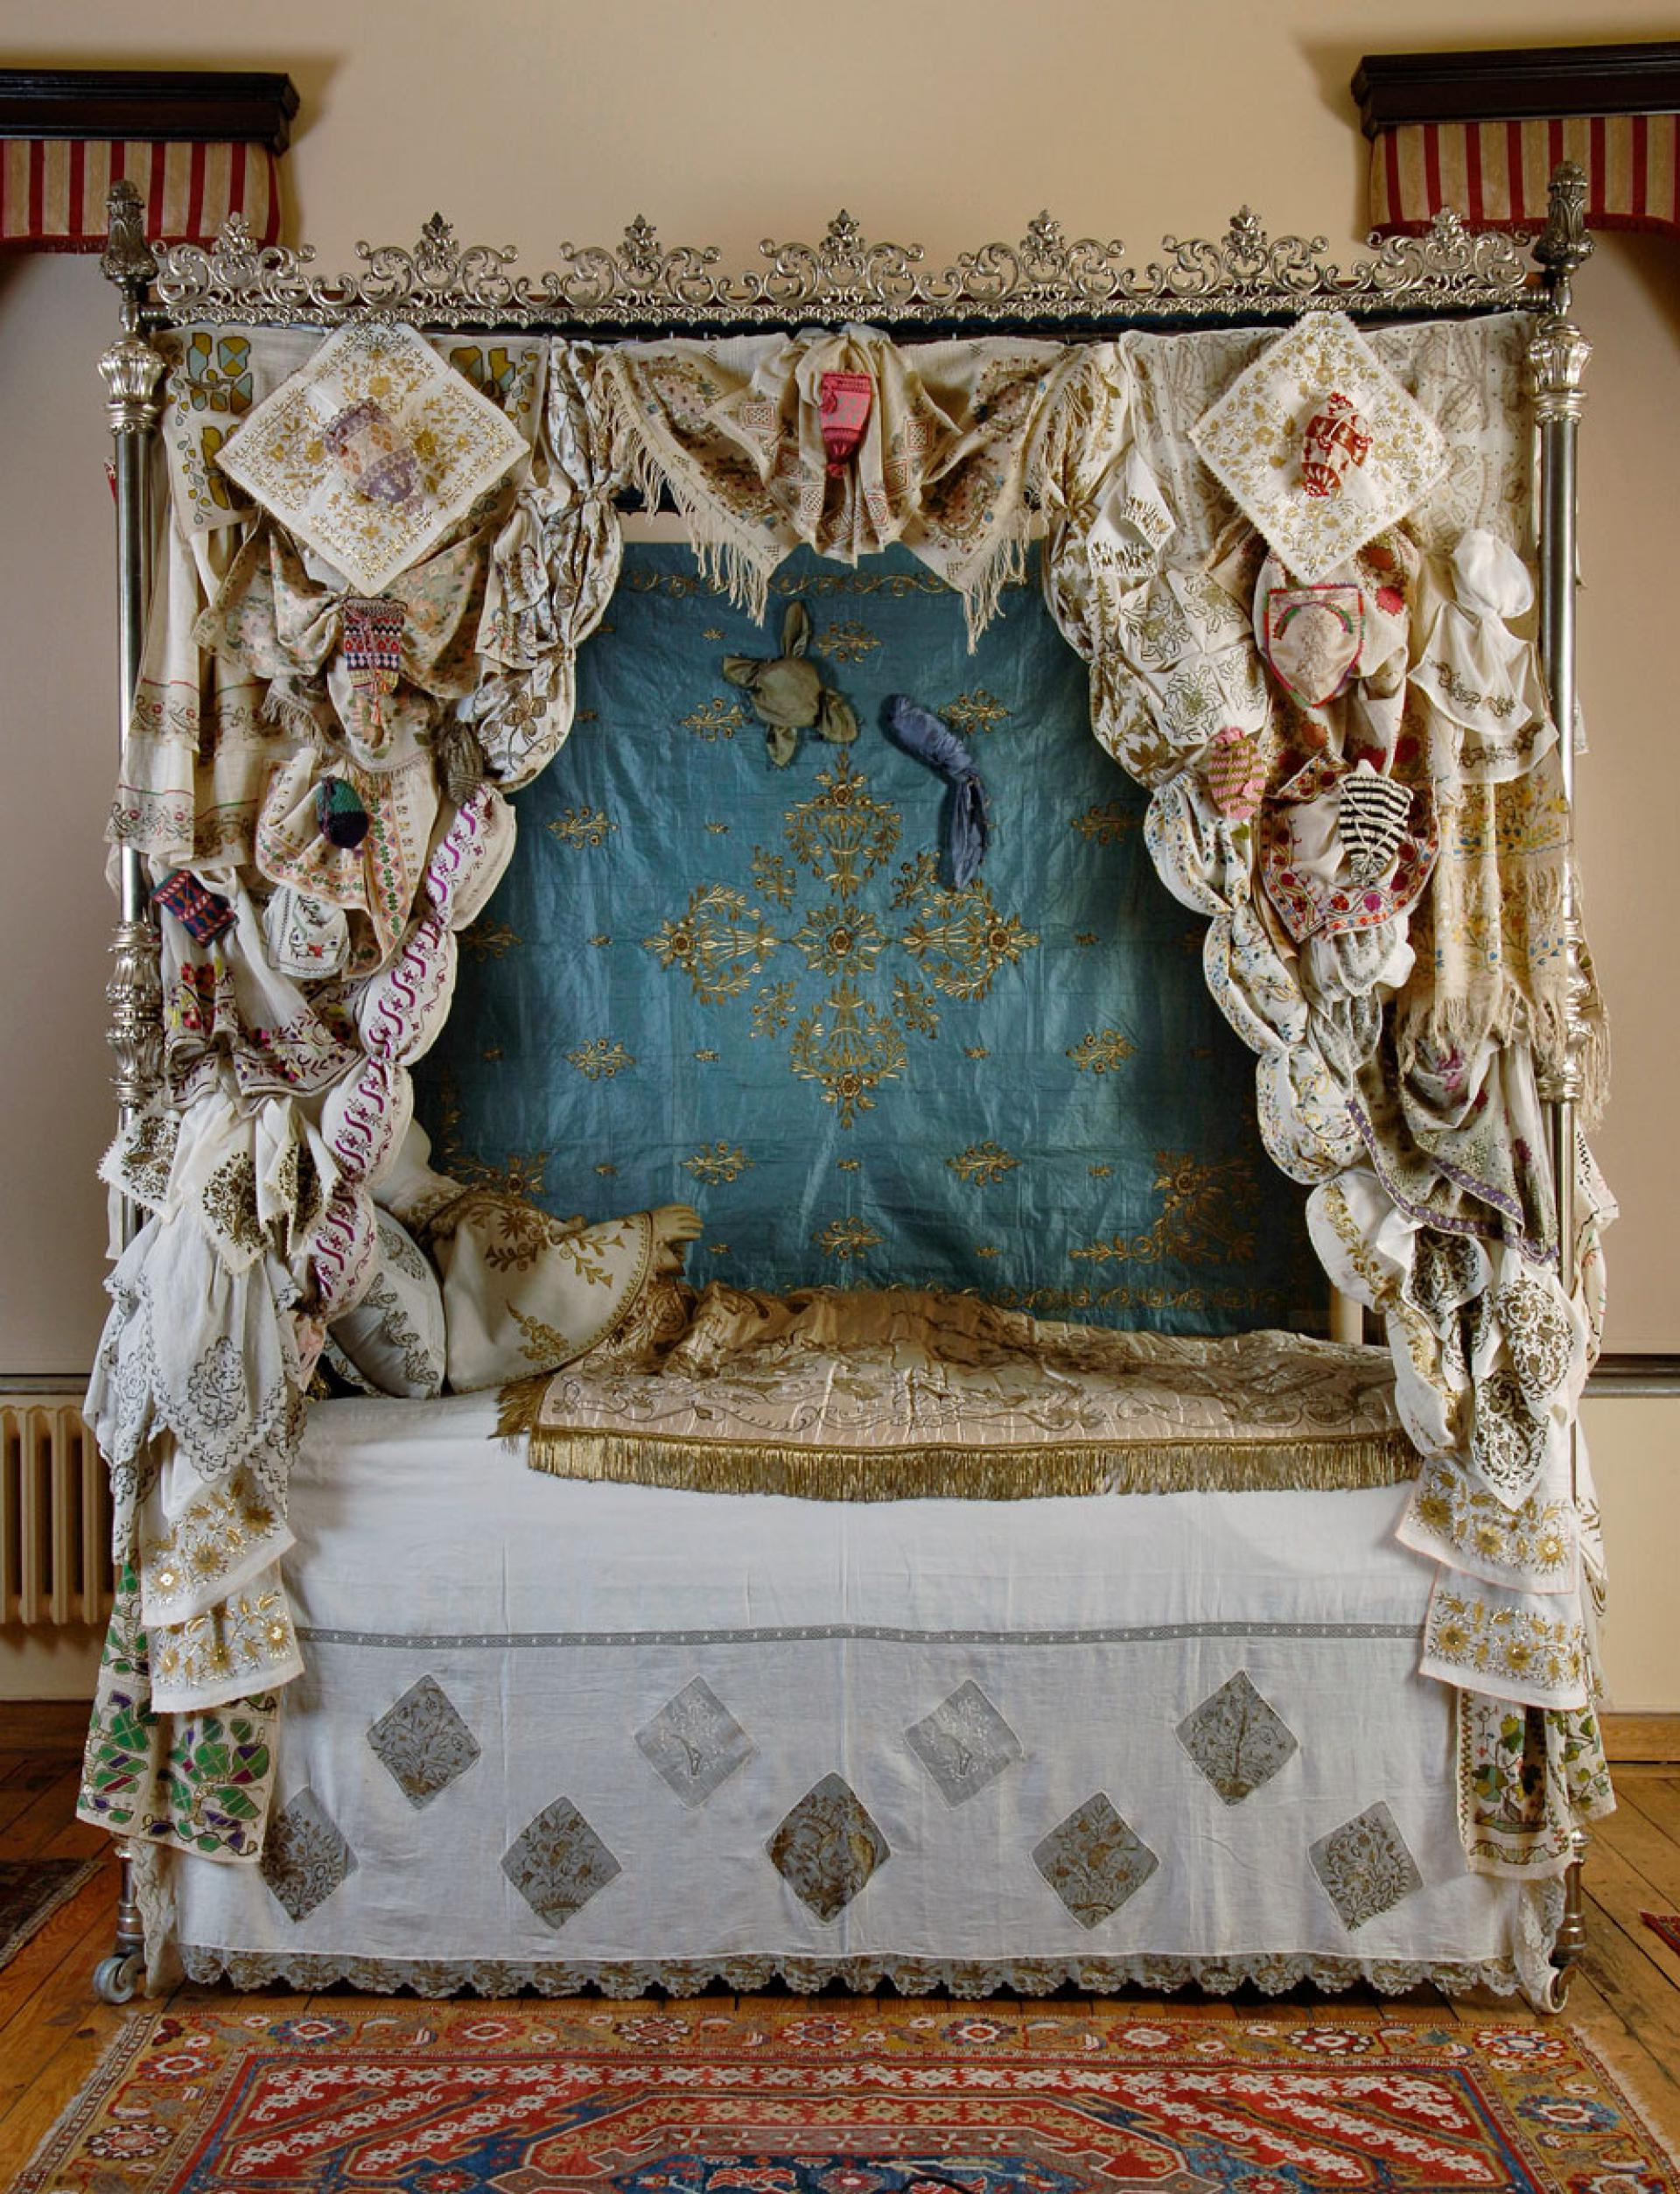 Circumcision tradition and the decorated bed - Muslim boys are usually circumcised between the ages of 5 and 11. Circumcisions were an occasion for joy and festivity. The circumcision bed would be set up in the main room of the house or in the garden. This bed would be decorated with embroideries borrowed from neighbors. Guests showered the boys with gifts.